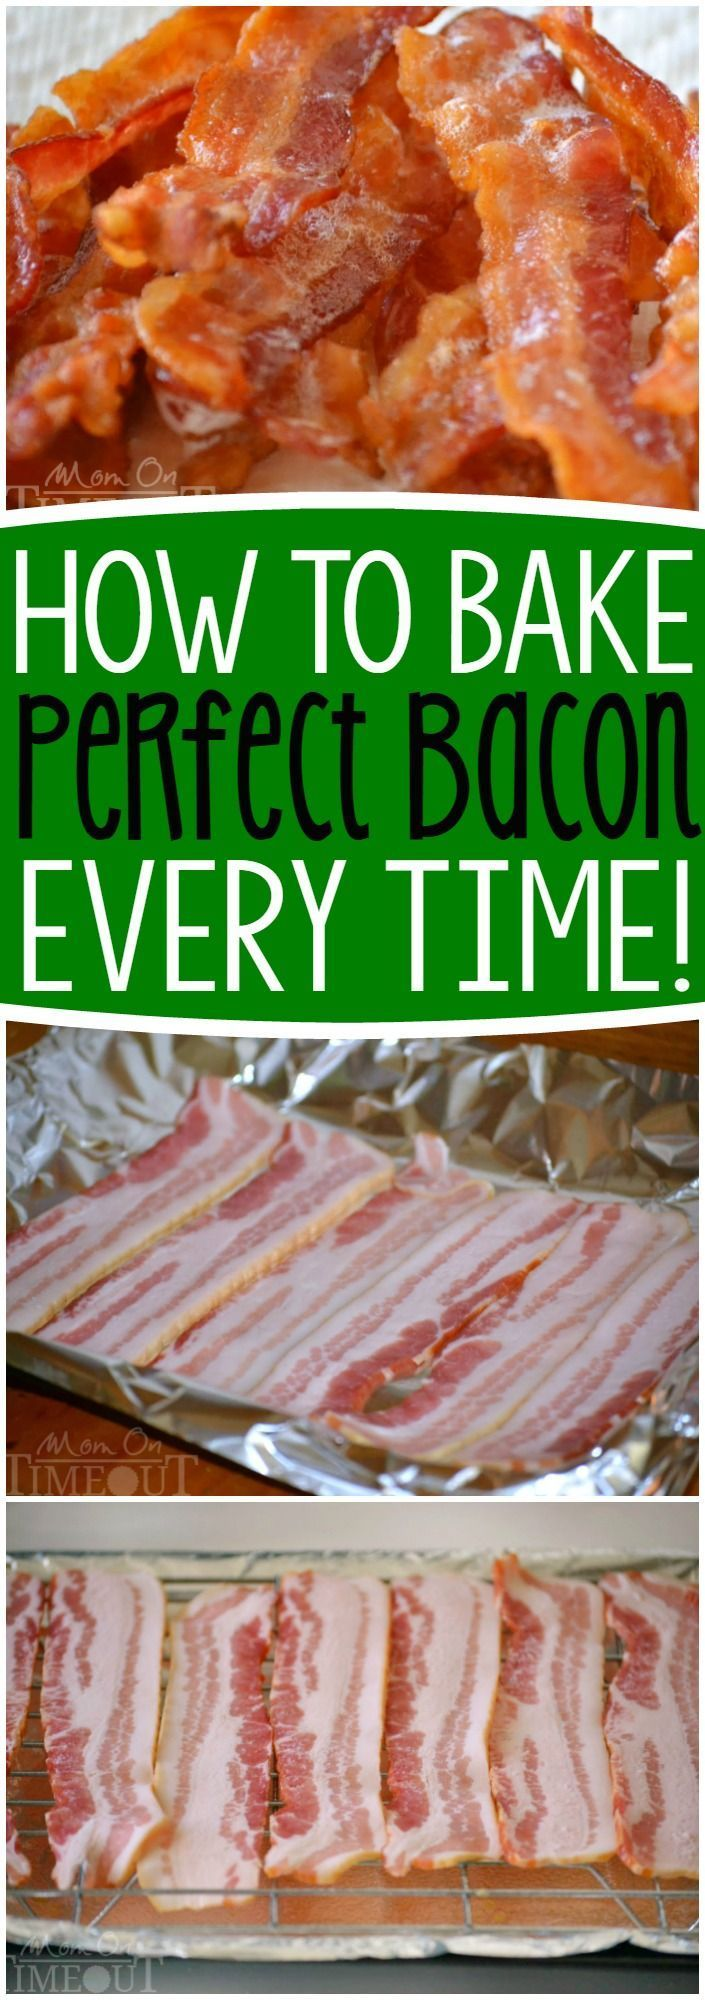 recipe: how to make back bacon [25]